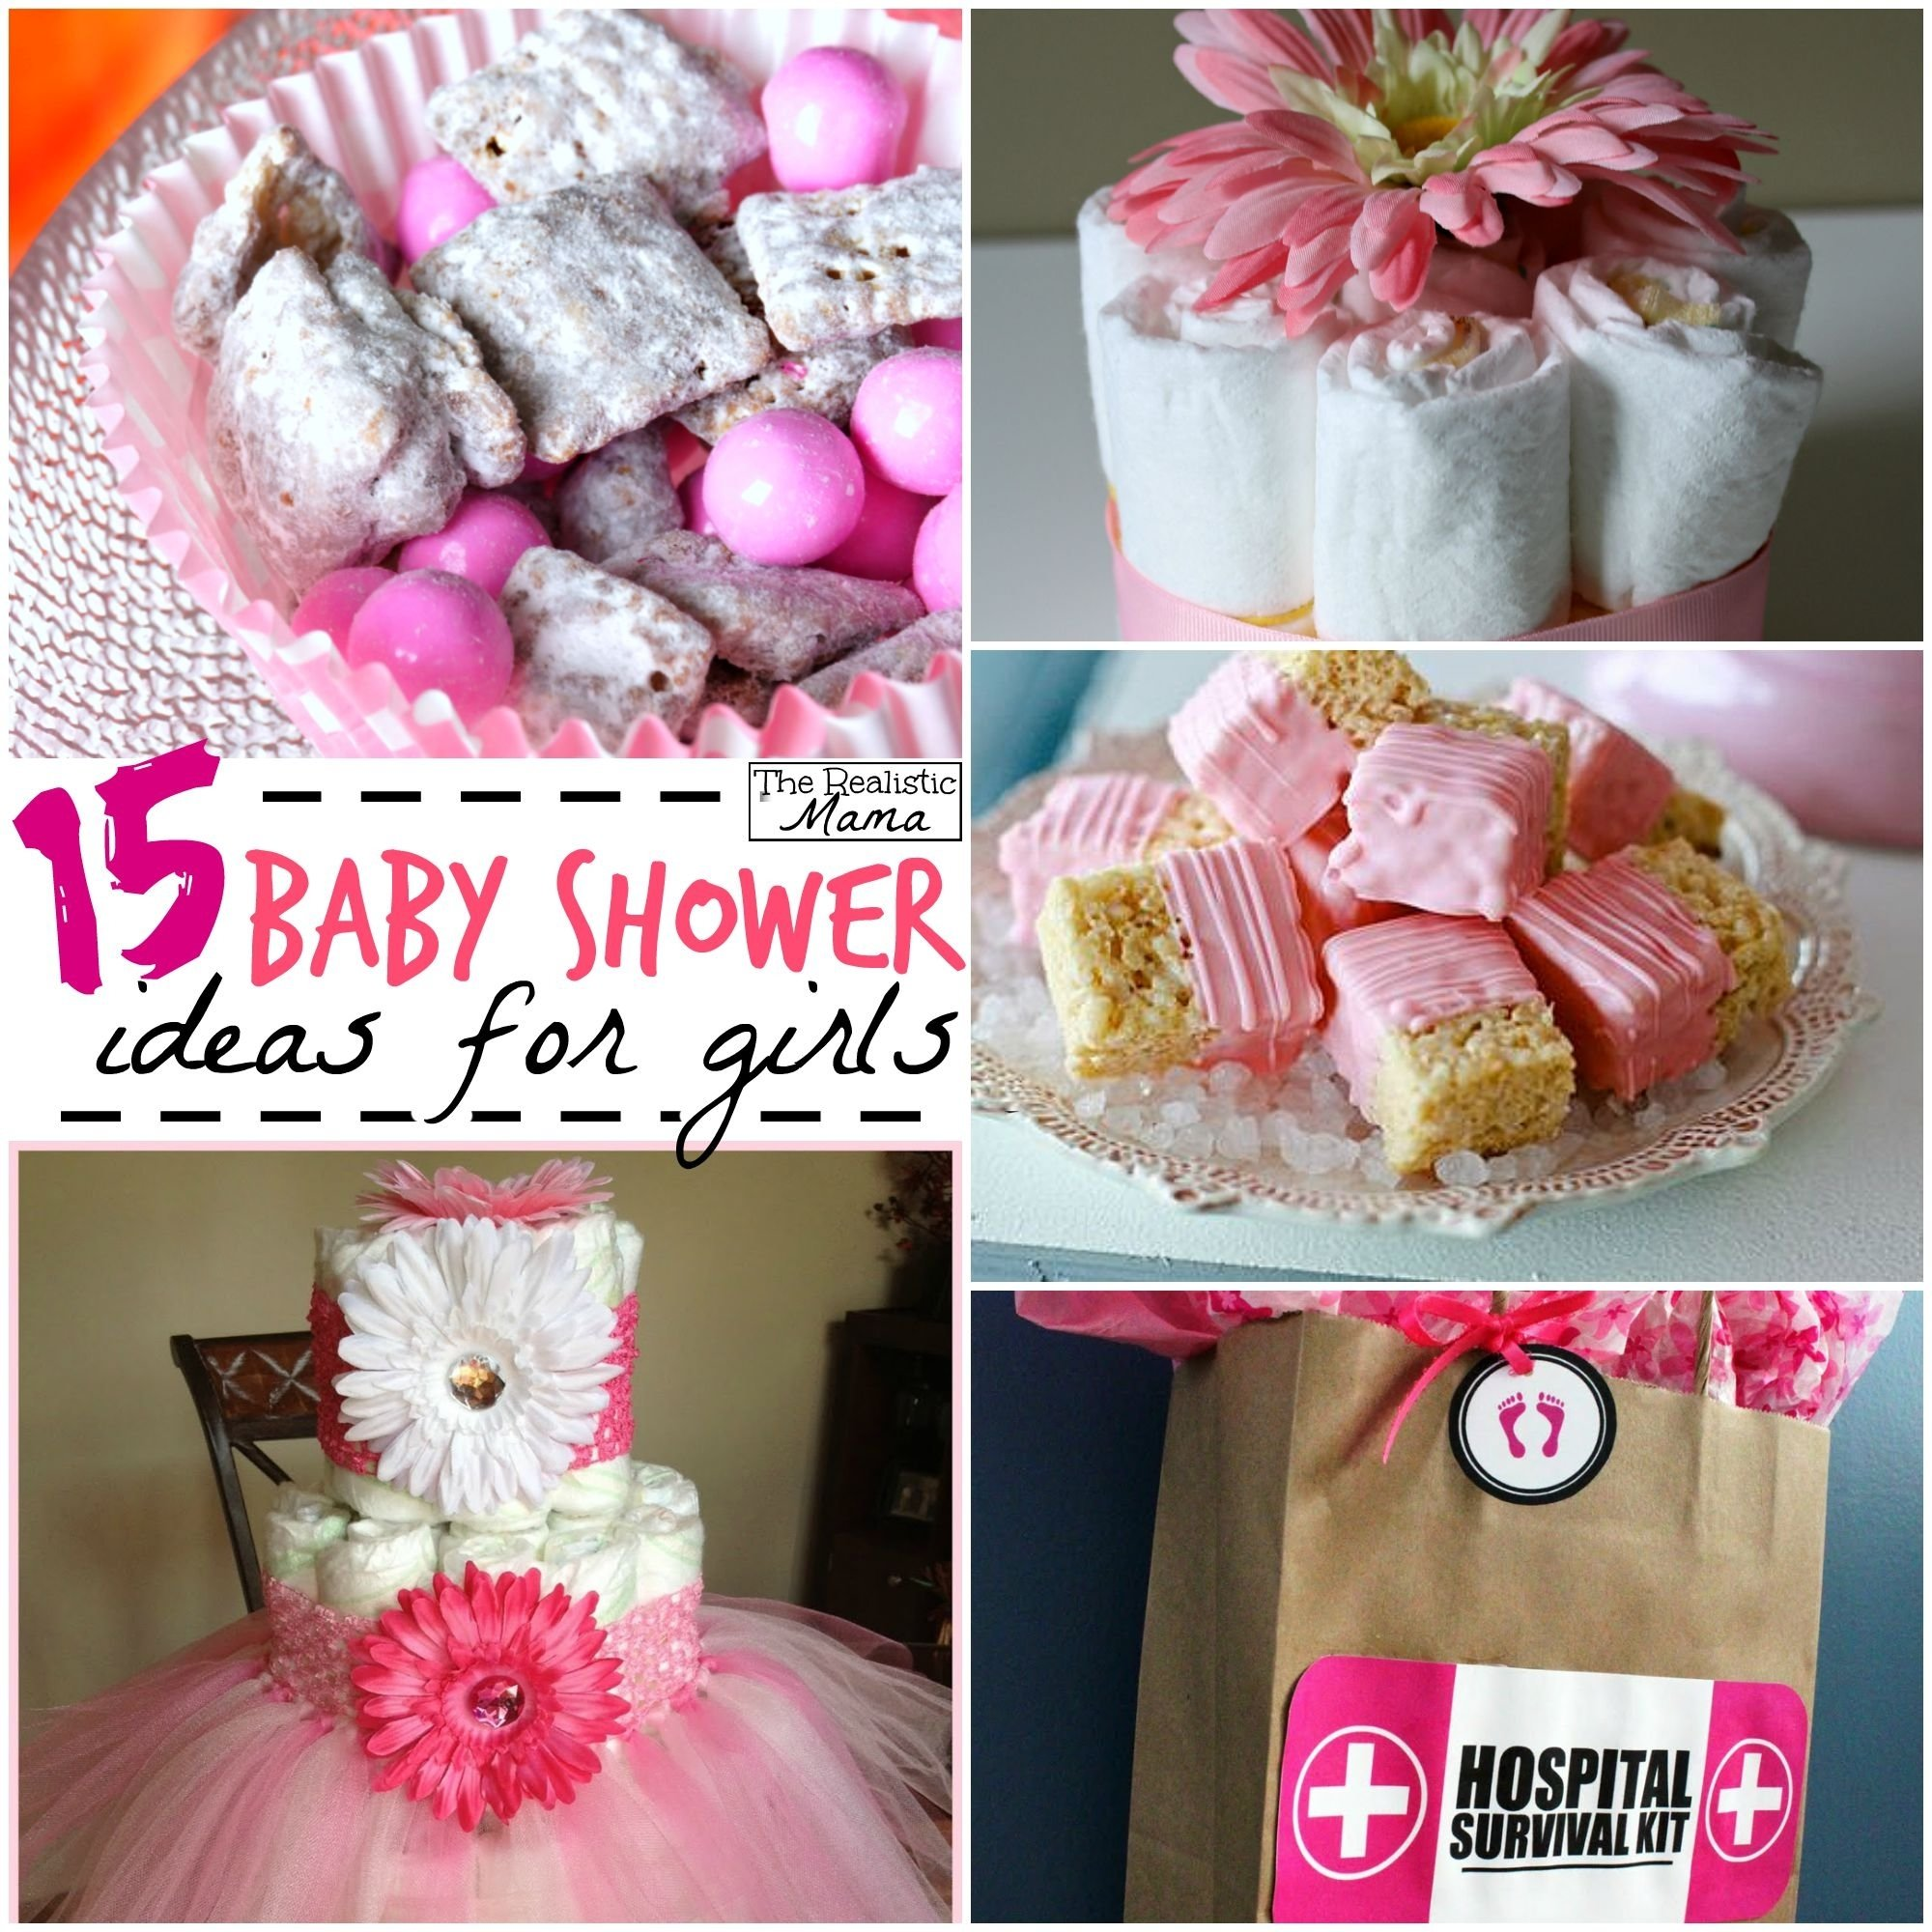 15 baby shower ideas for girls - the realistic mama